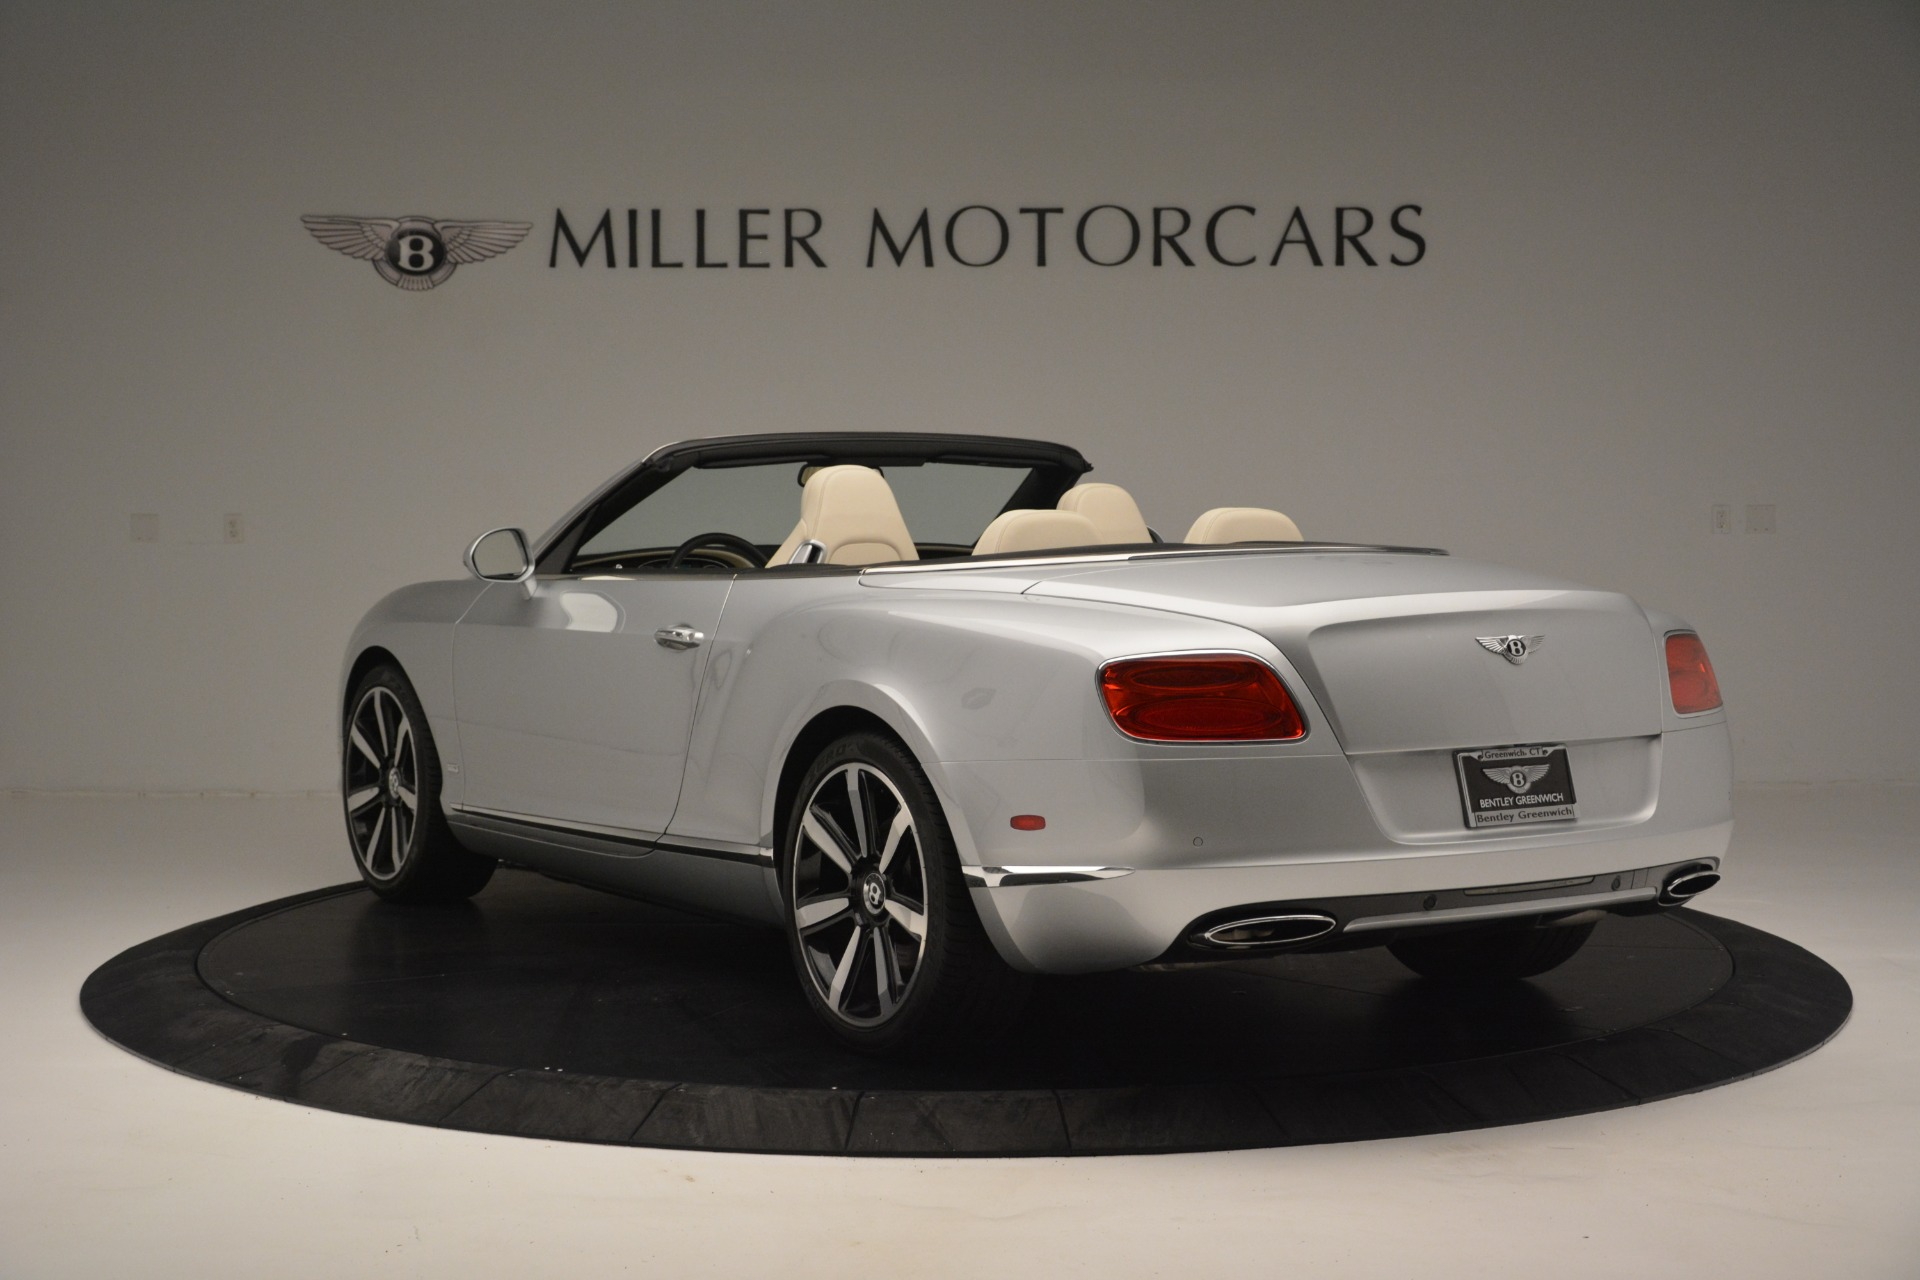 Used 2013 Bentley Continental GT W12 Le Mans Edition For Sale In Greenwich, CT 2519_p4